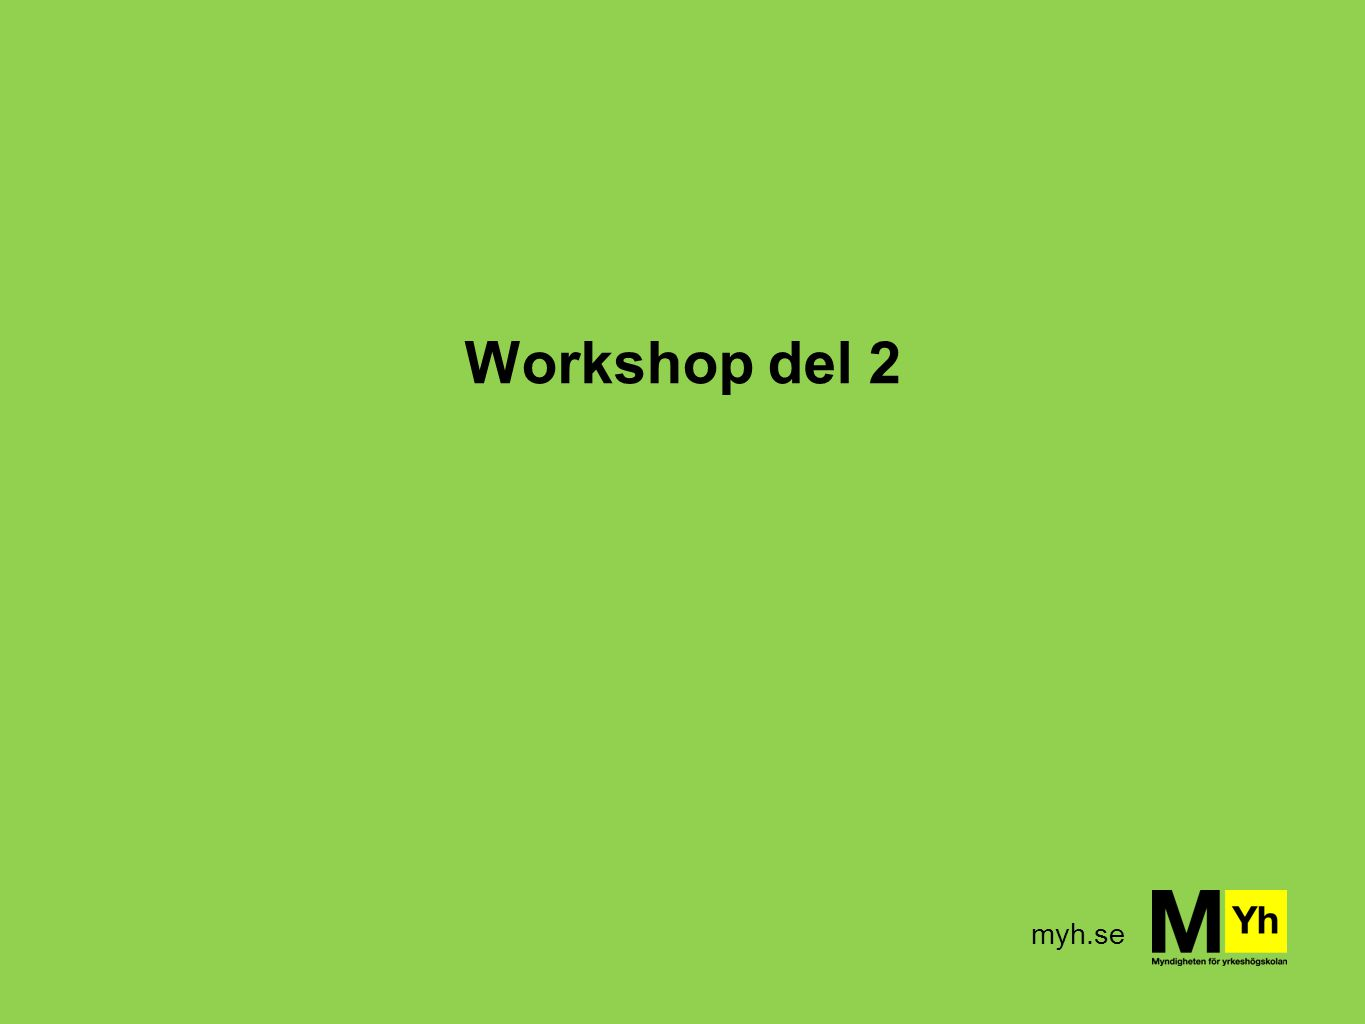 Workshop del 2